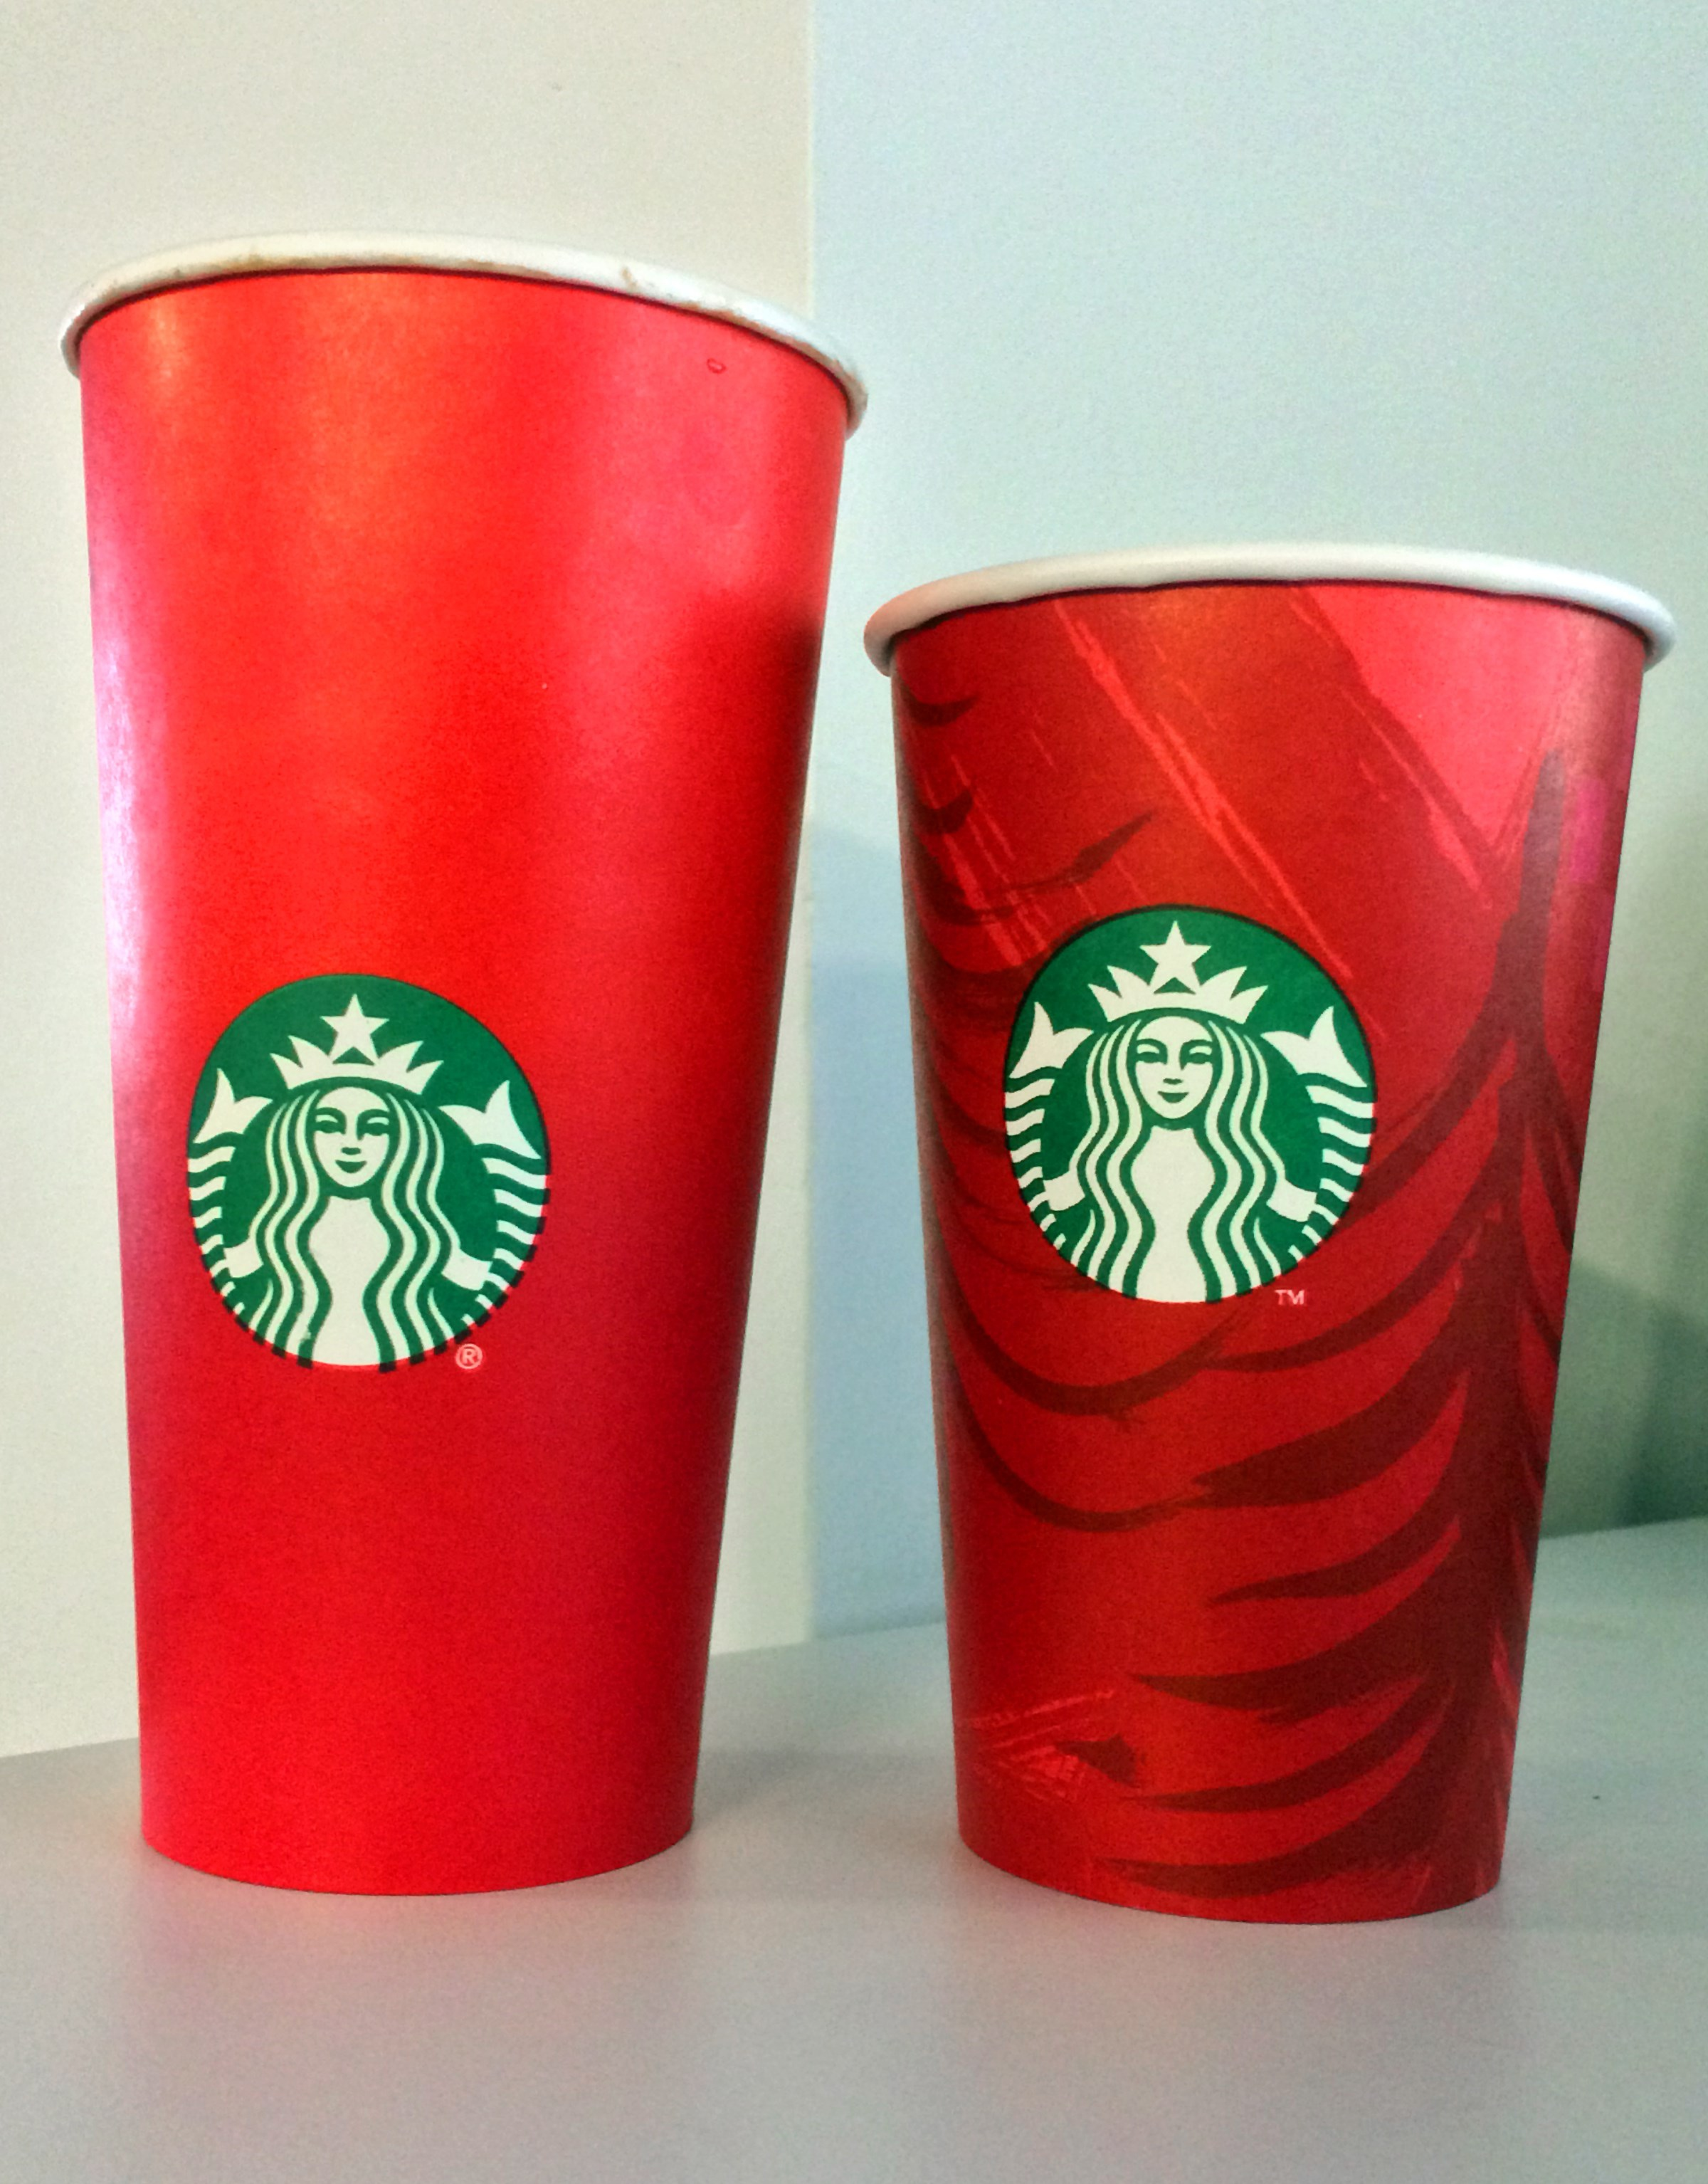 starbucks s red cup controversy explained vox here s what the starbucks red cup looks like now and what it looked like in 2014